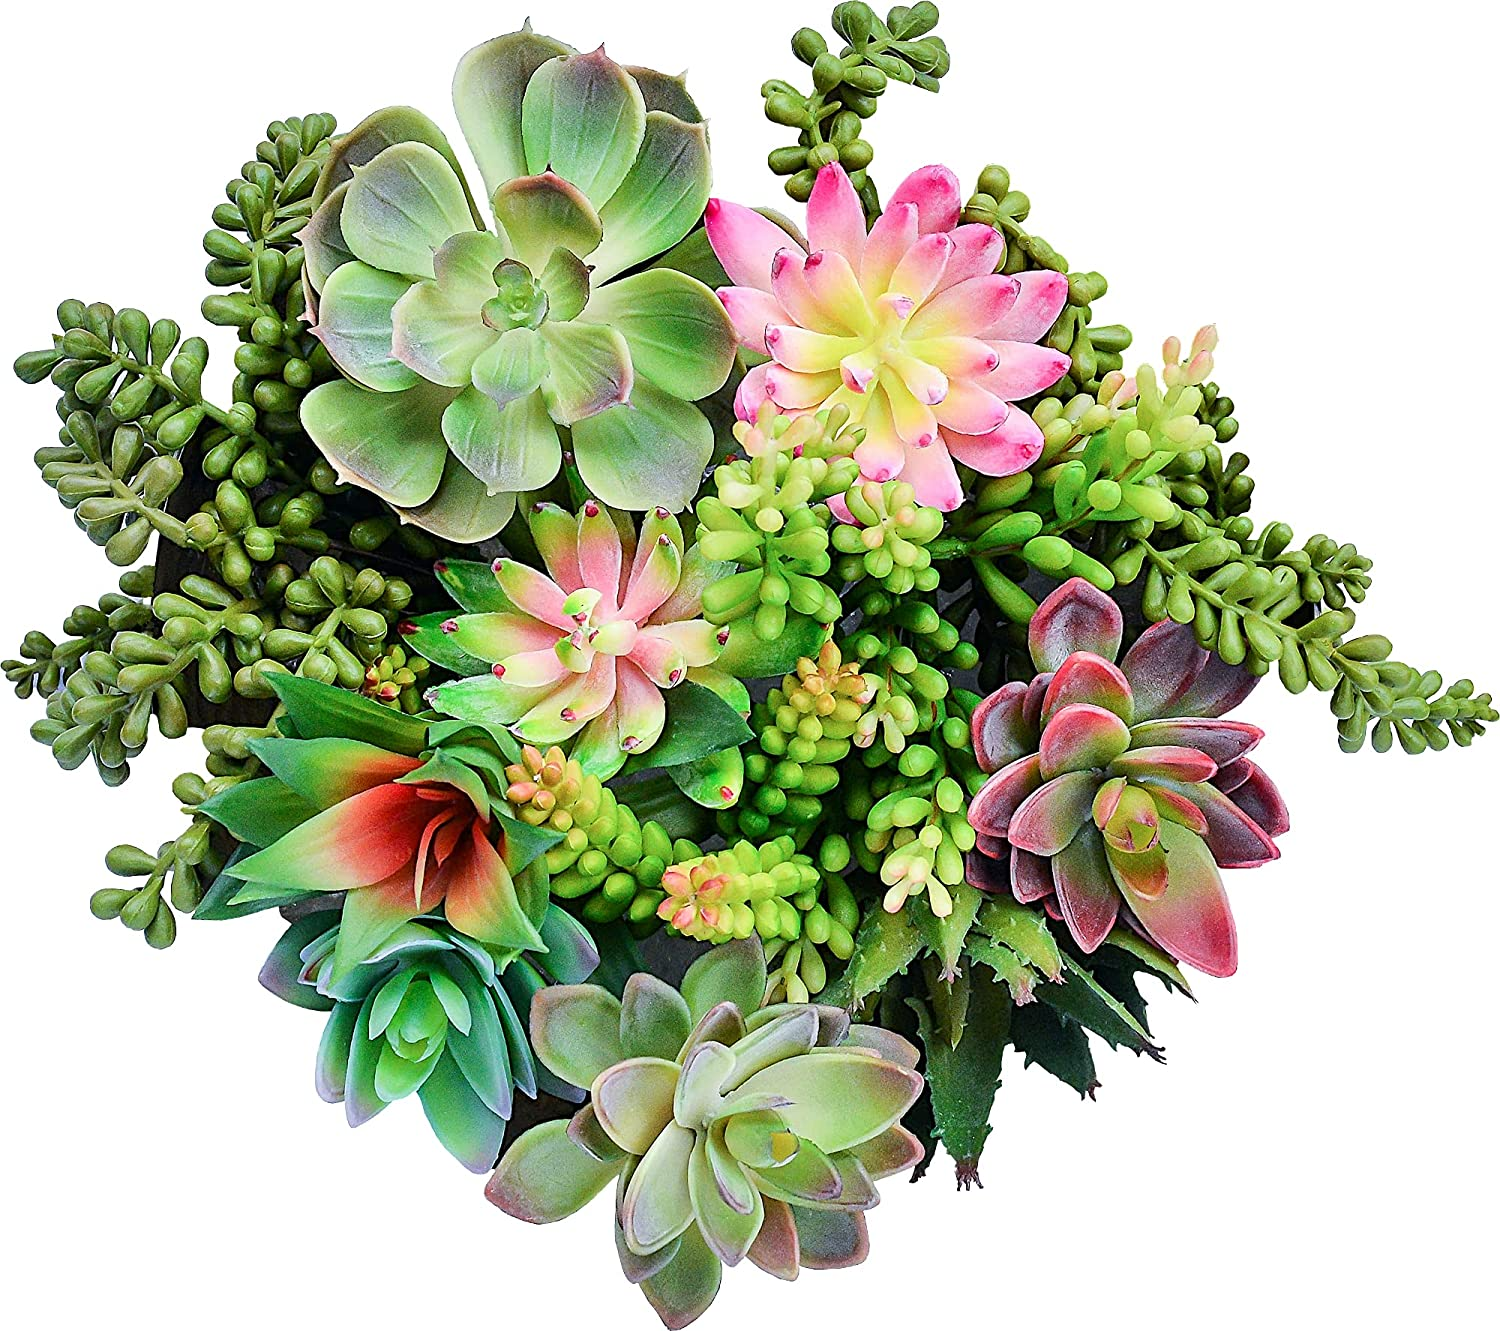 Artificial Succulents Plants-14 Pack Fake Succulents-Unpotted Faux Succulent Stems Bulk-Assorted Realistic Large Plastic Plants Set-Cactus Hanging Silk Plant for Wall Home Decor Crafts by NiftyPetal